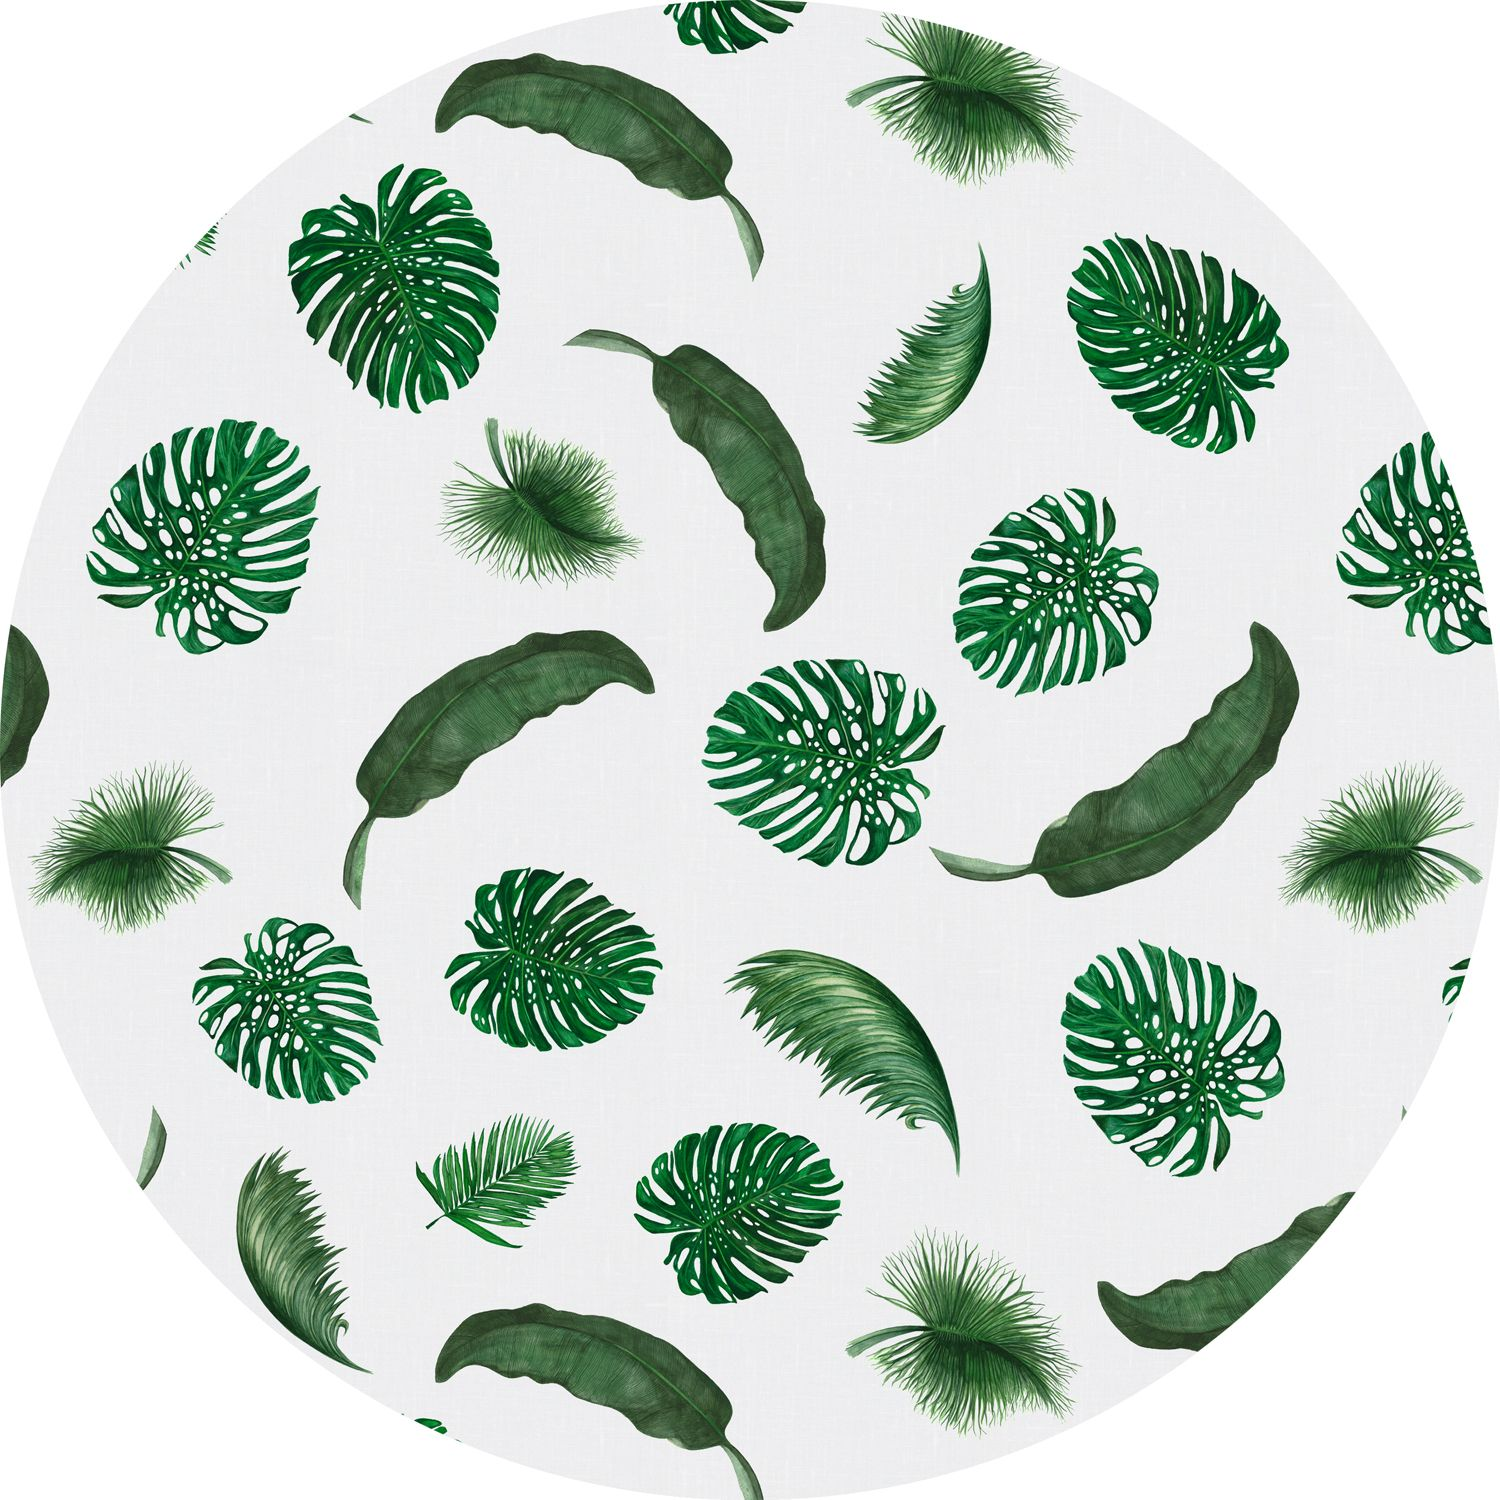 Huddleson Linens   Tropical Leaves White Round Linen Tablecloth   Monstera  Banana Palm Unique Printed Table